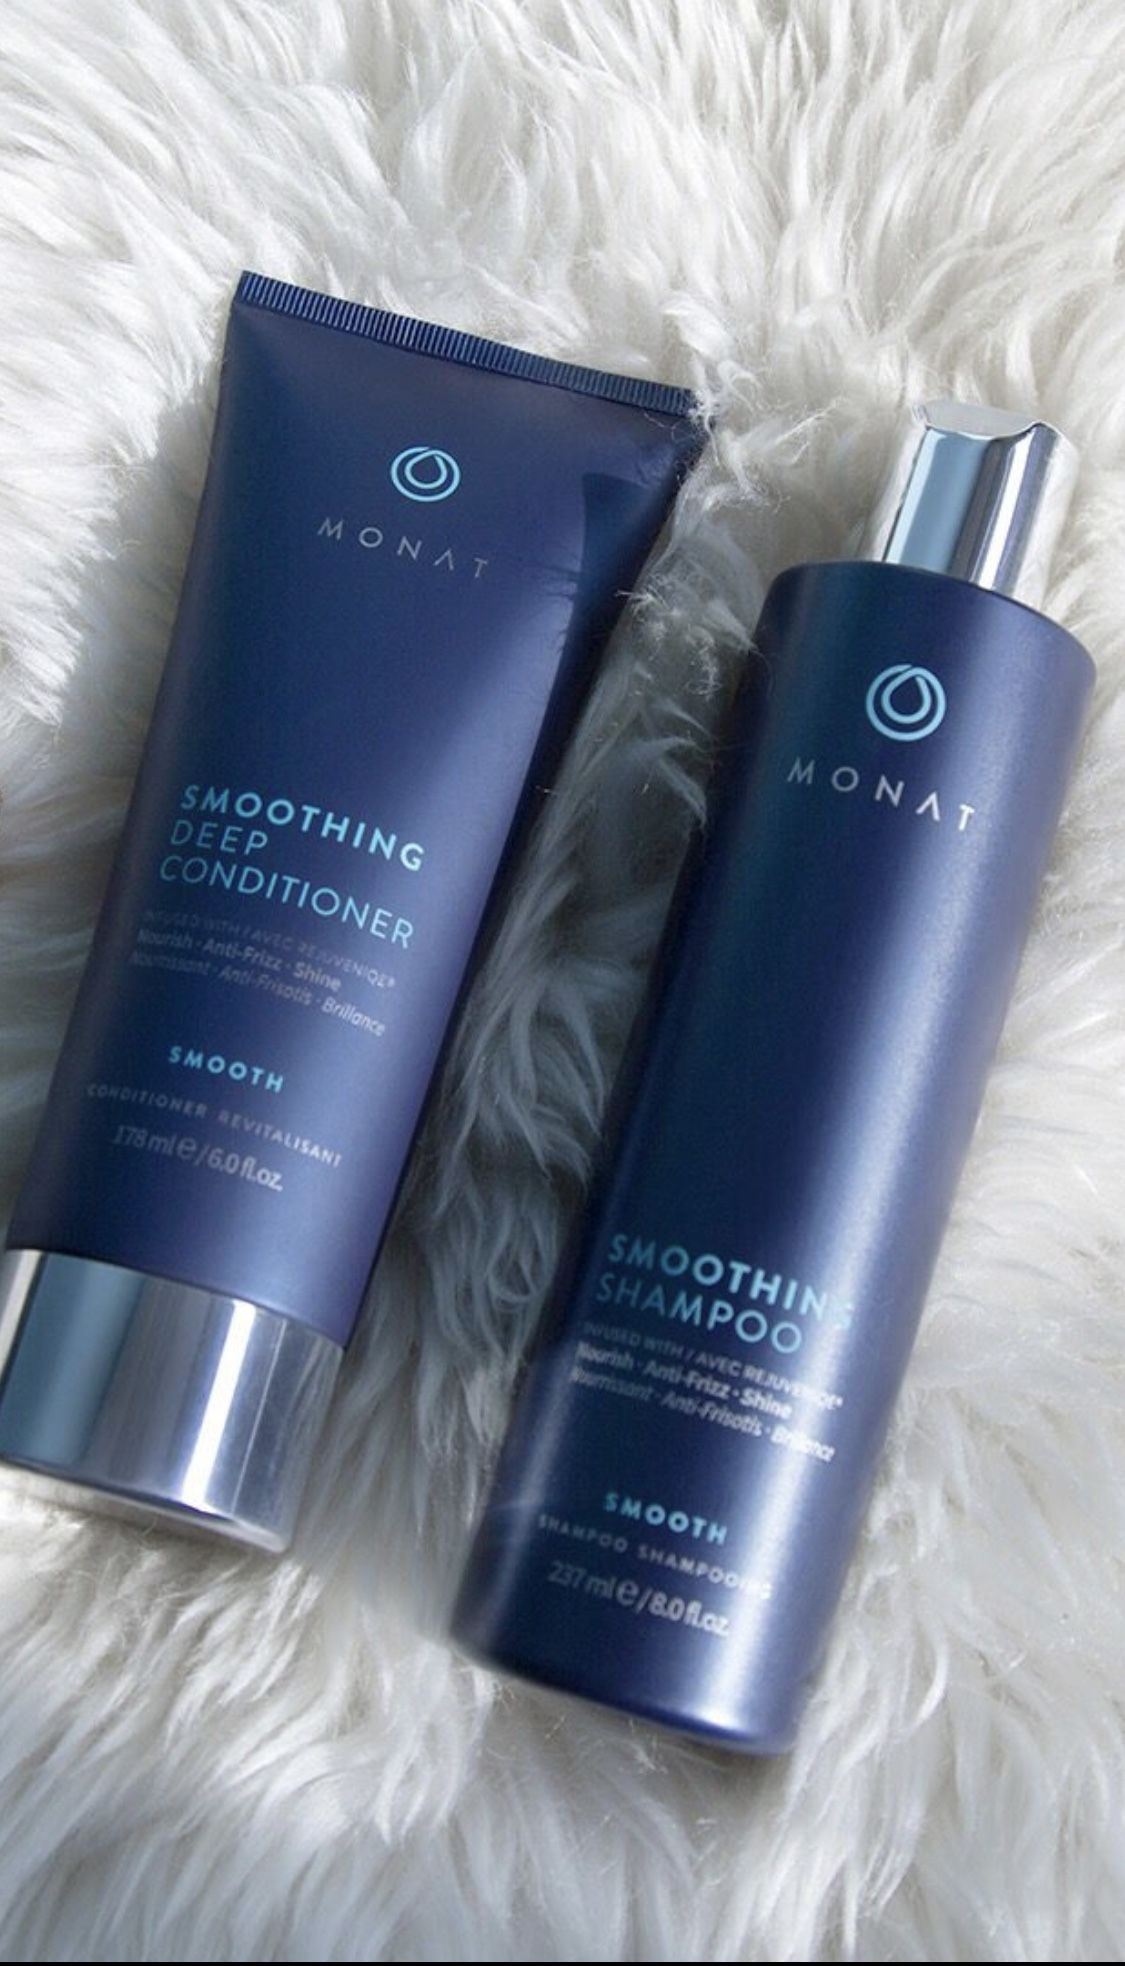 Monat Smoothing Shampoo & Conditioner fight Frizz new February 2018. Join #monat as a #business #monatbusiness #monatproducts